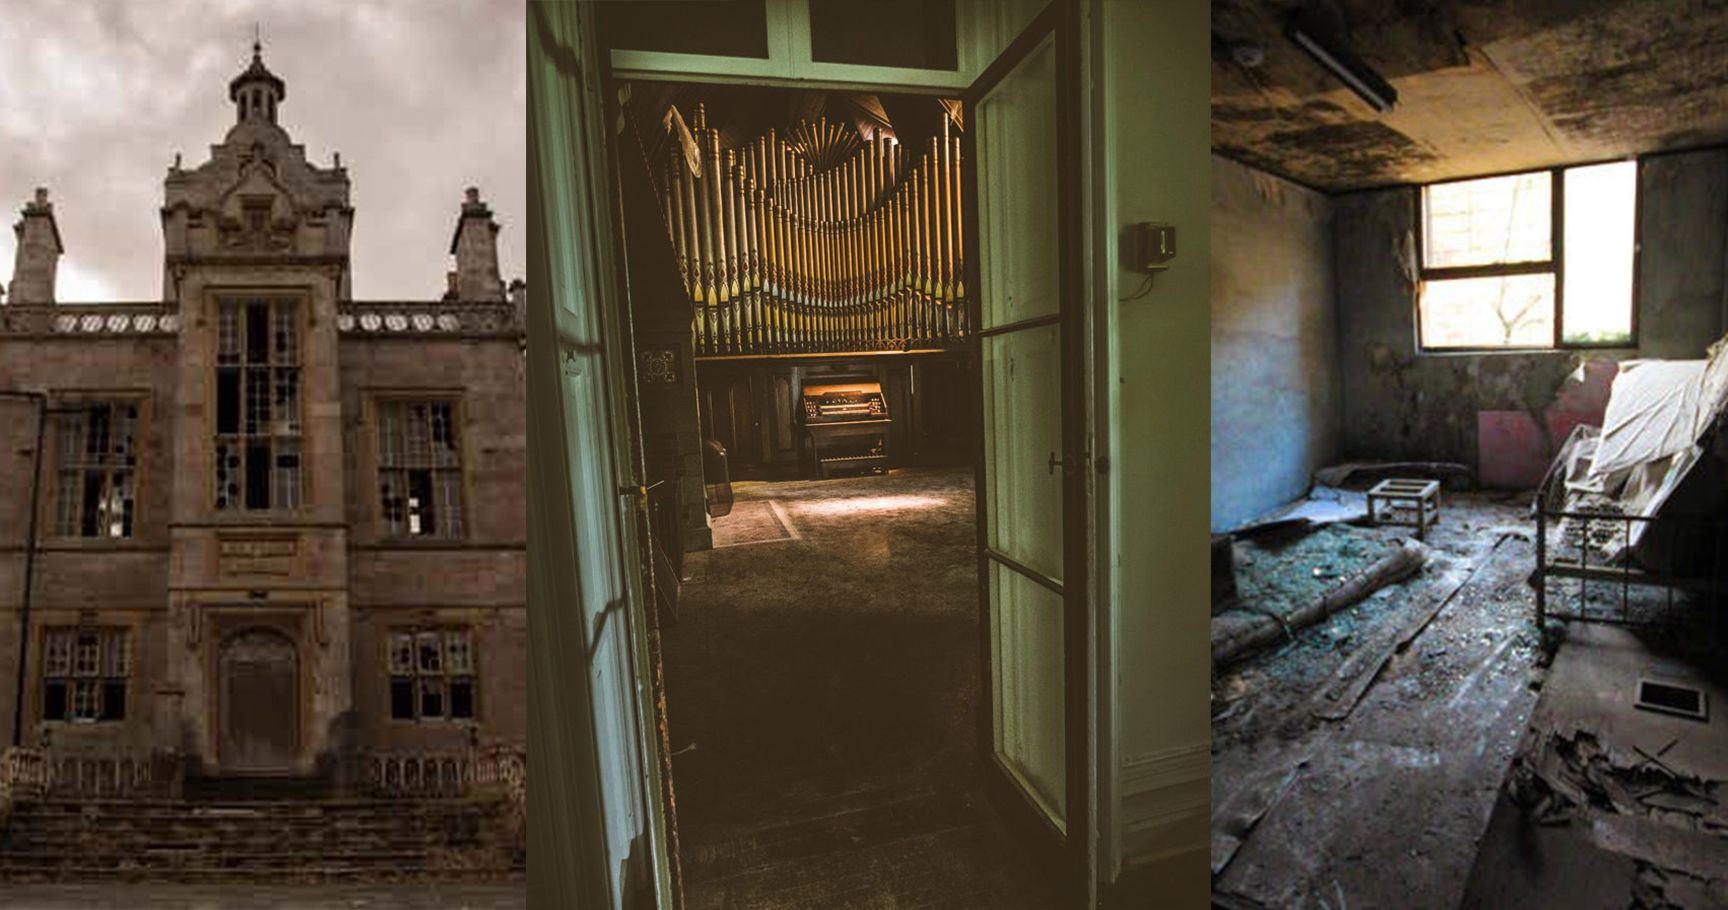 15 Chilling Photos Of Abandoned Mental Asylums